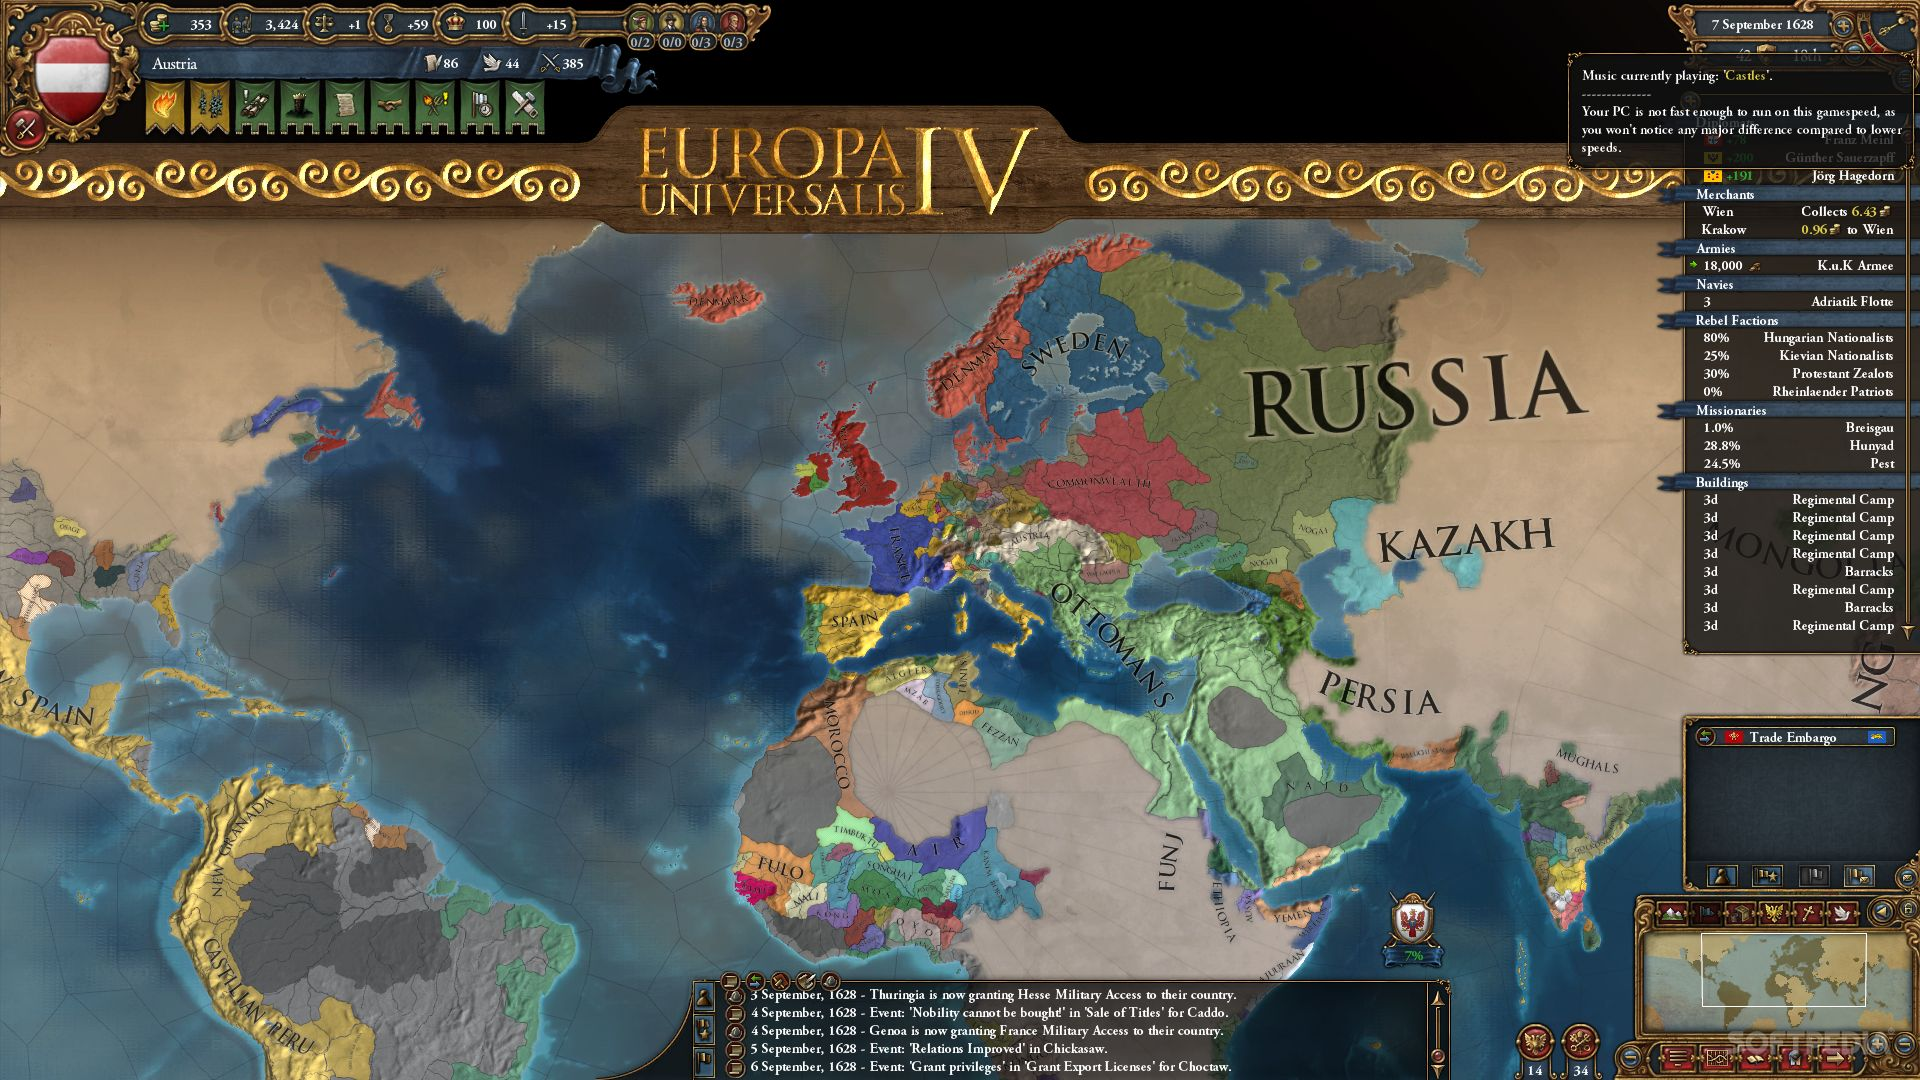 Europa universalis iv art of war review pc europa universalis iv art of war gumiabroncs